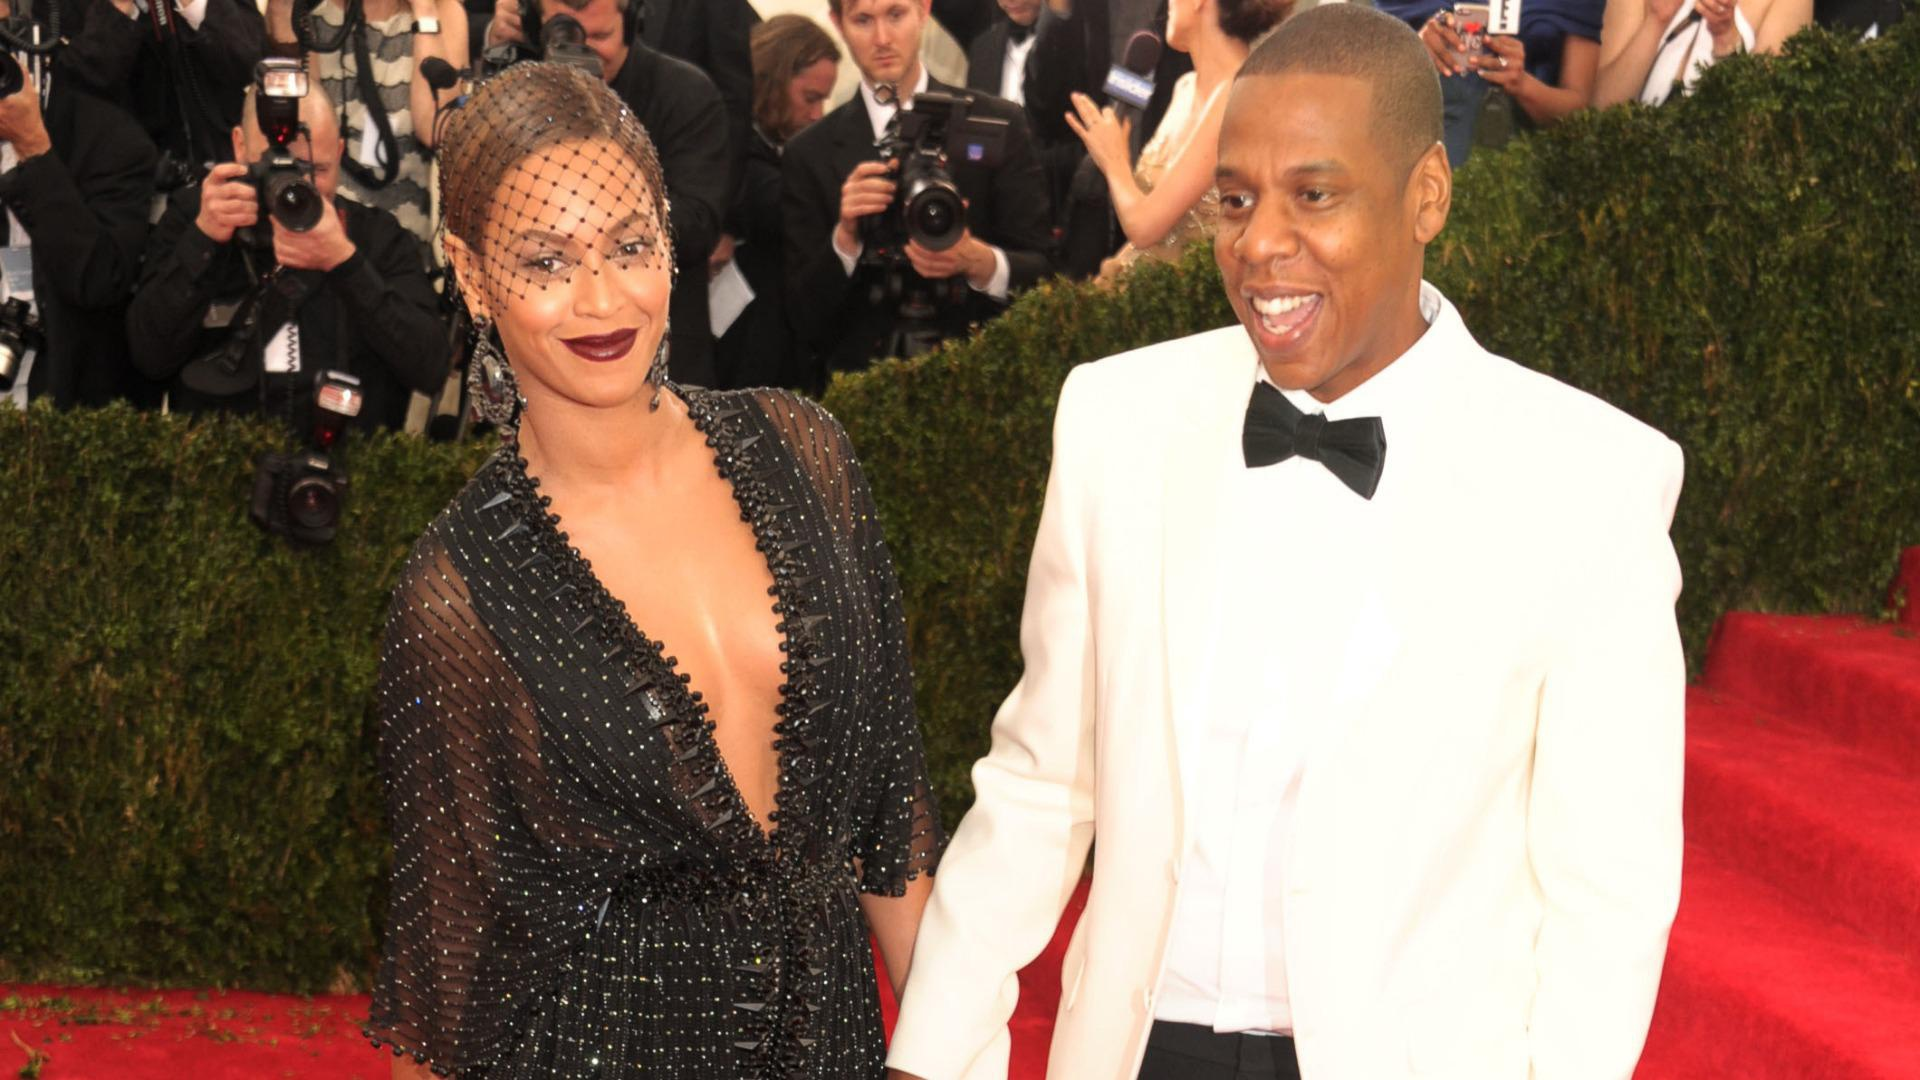 Beyoncé's marriage isn't over, her momma says it's still perfect